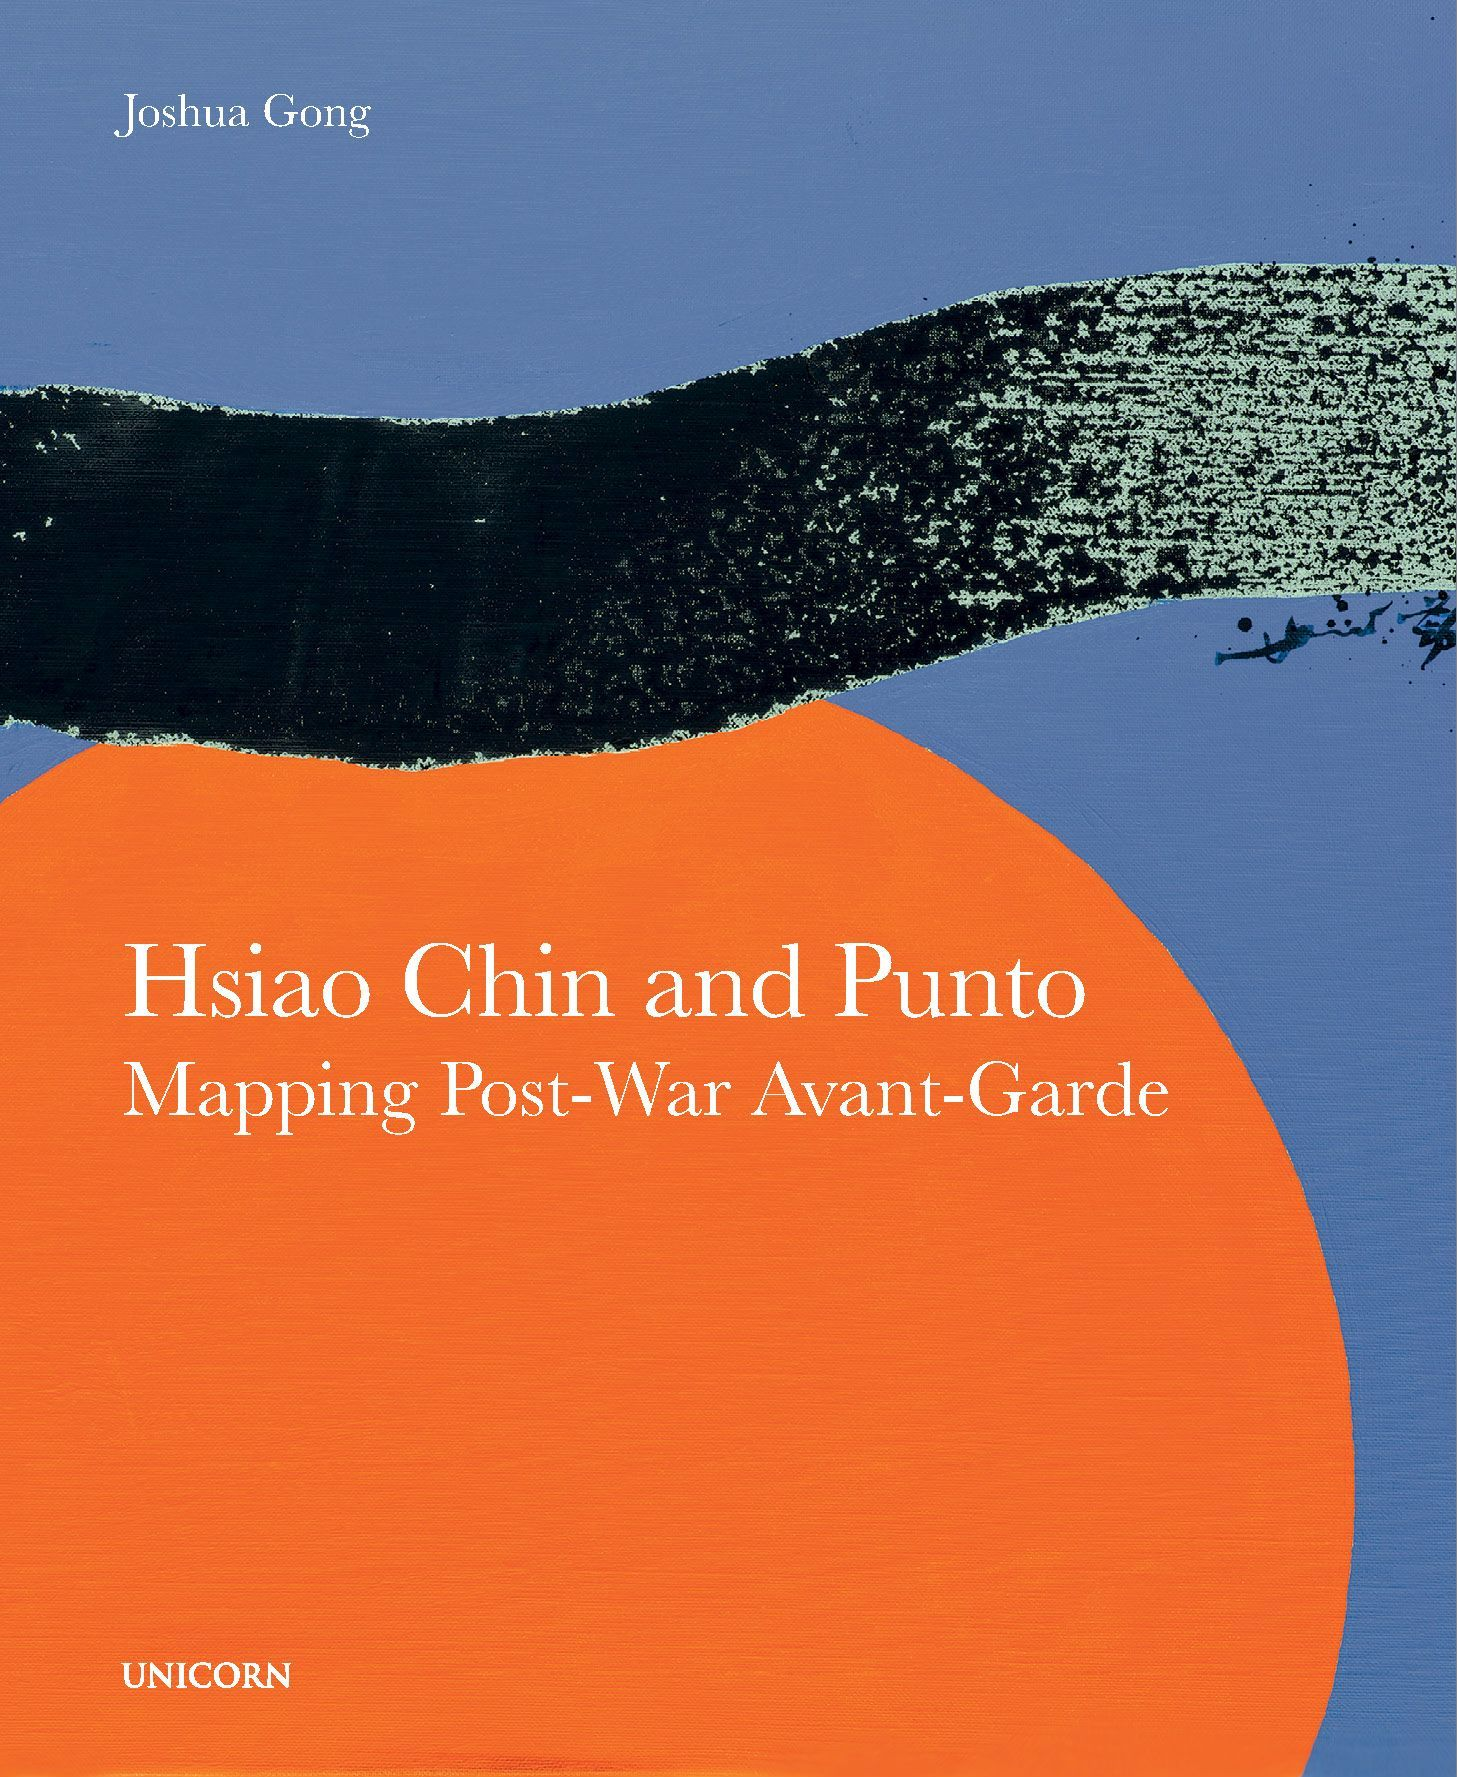 Hsiao Chin and Punto: Mapping Post-War Avant-Garde